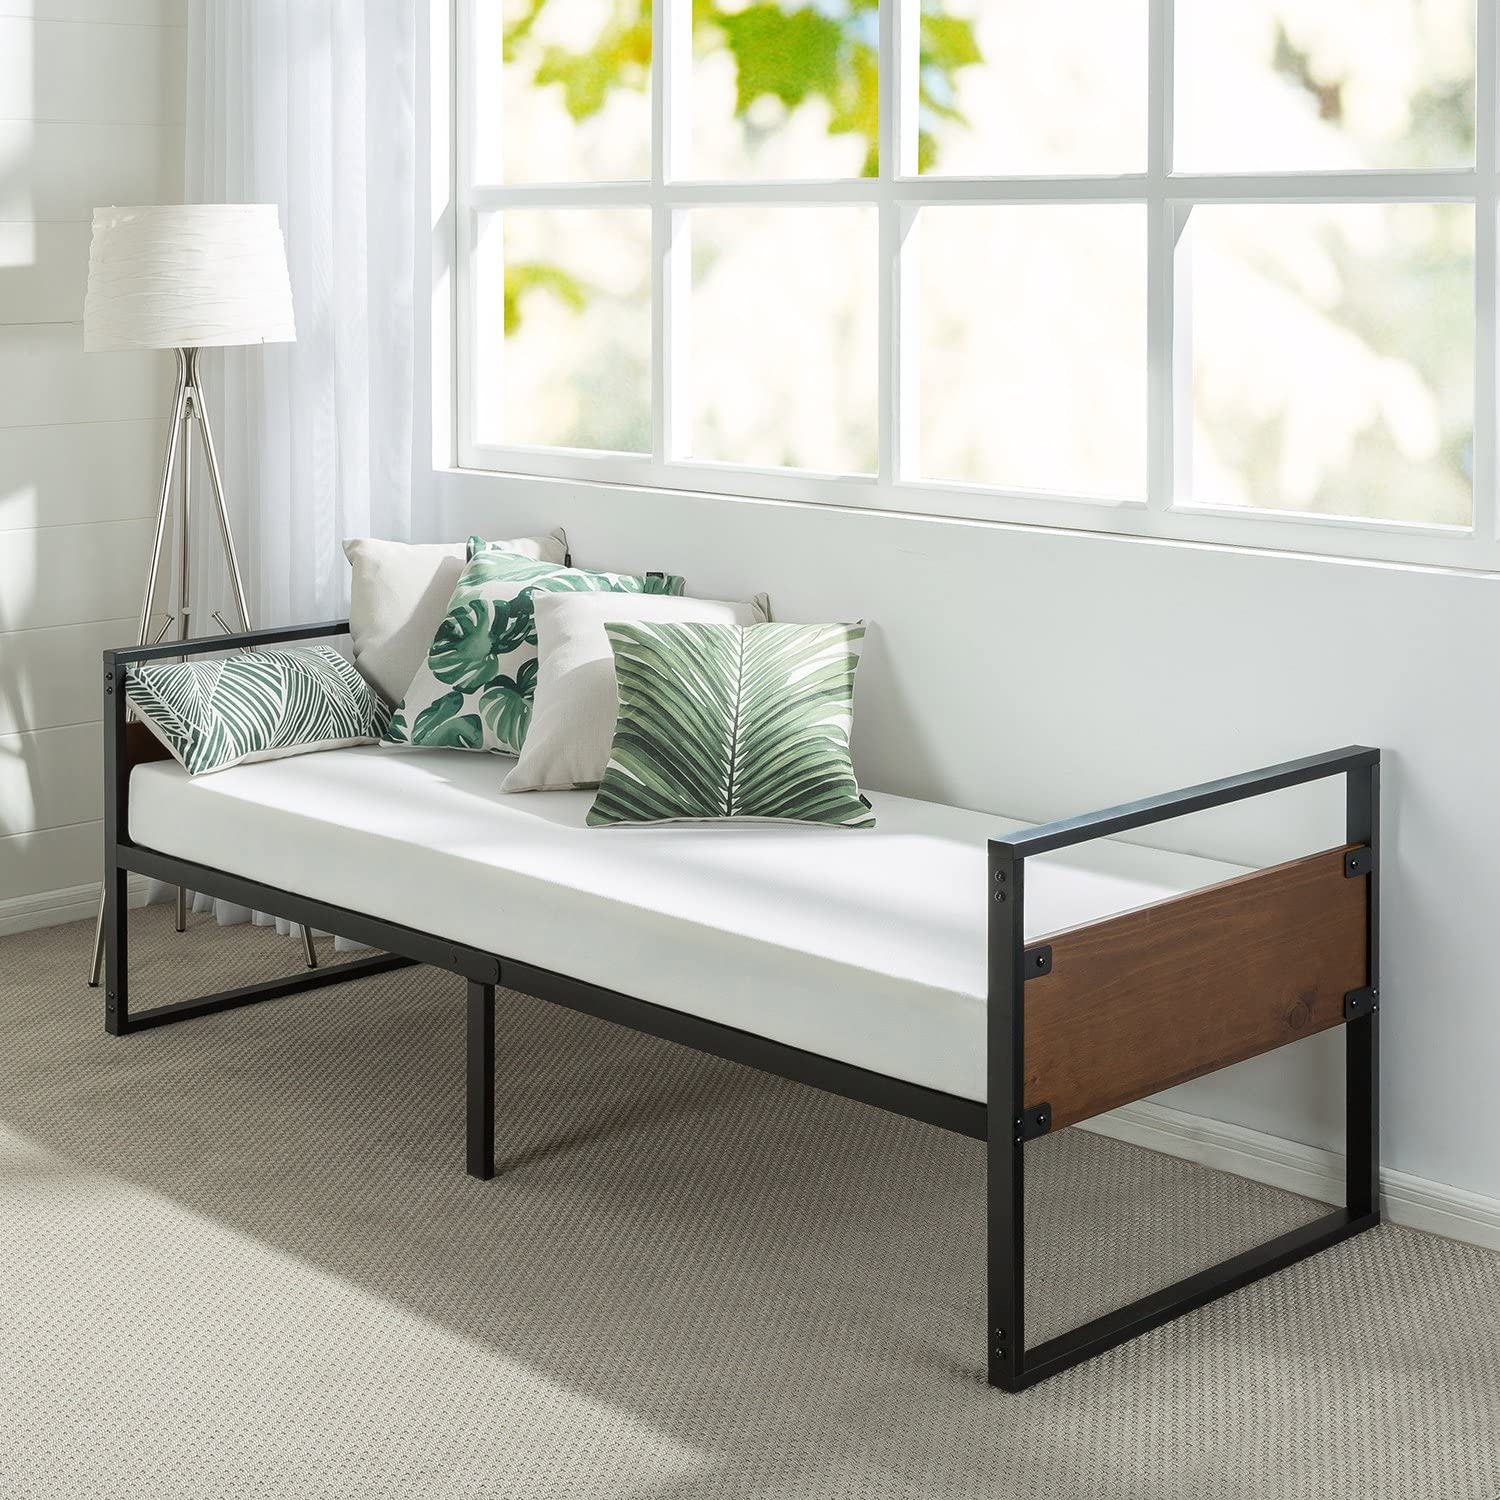 Zinus Suzanne 30 Inch Wide Daybed Frame with Mattress Set